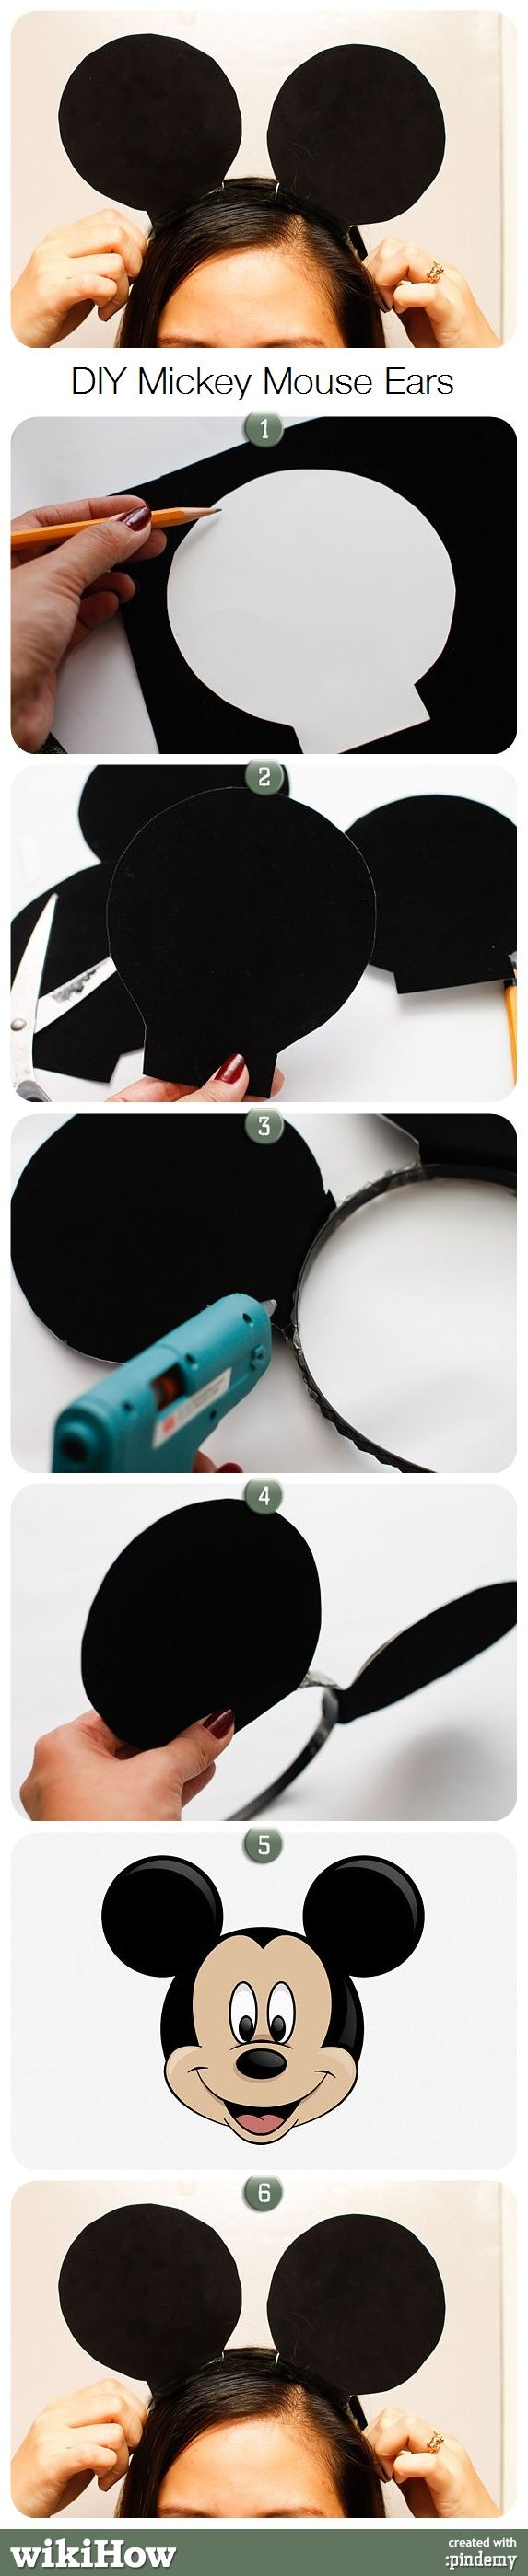 DIY Mickey Mouse Ears, from wikiHow (with ear templates!)